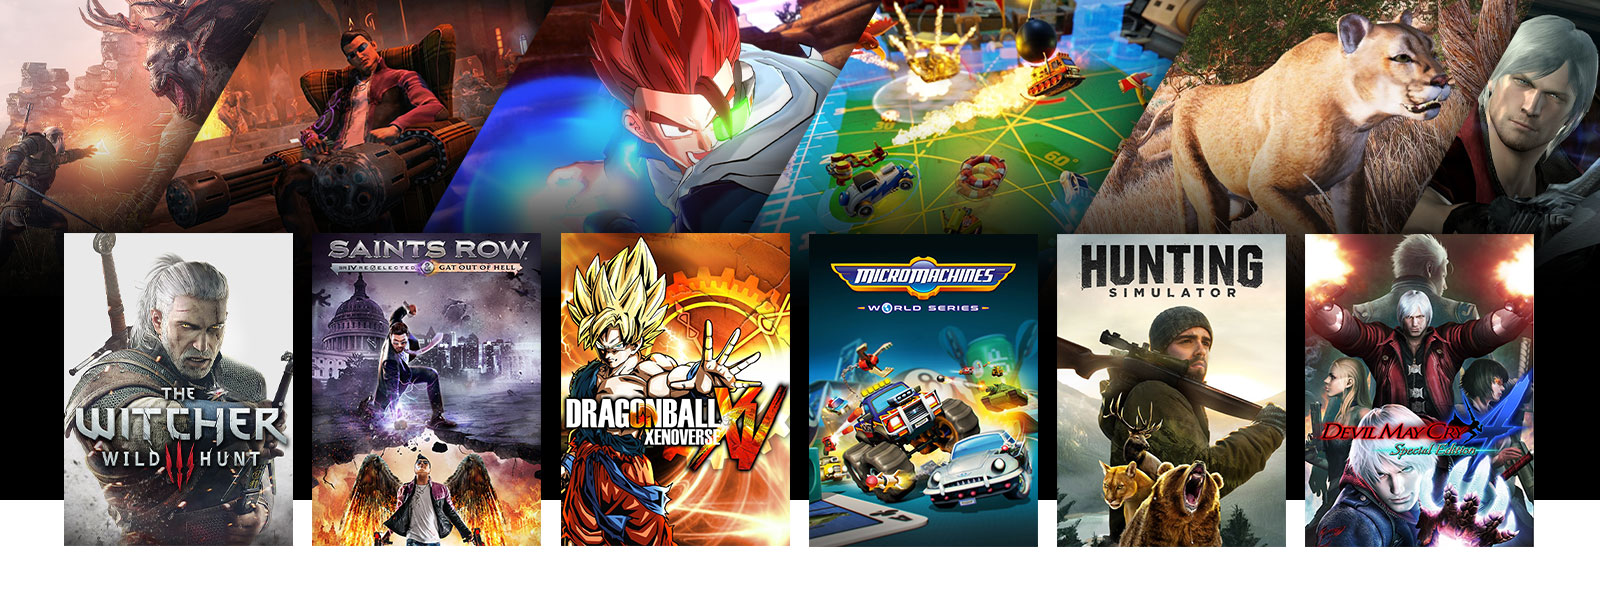 A collage of scenes and box art from Xbox One games on sale. The Witcher 3: Wild Hunt, Saints Row IV: Gat out of Hell, DRAGON BALL XENOVERSE, Micro Machines World Series, Hunting Simulator, and Devil May Cry 4 Special Edition